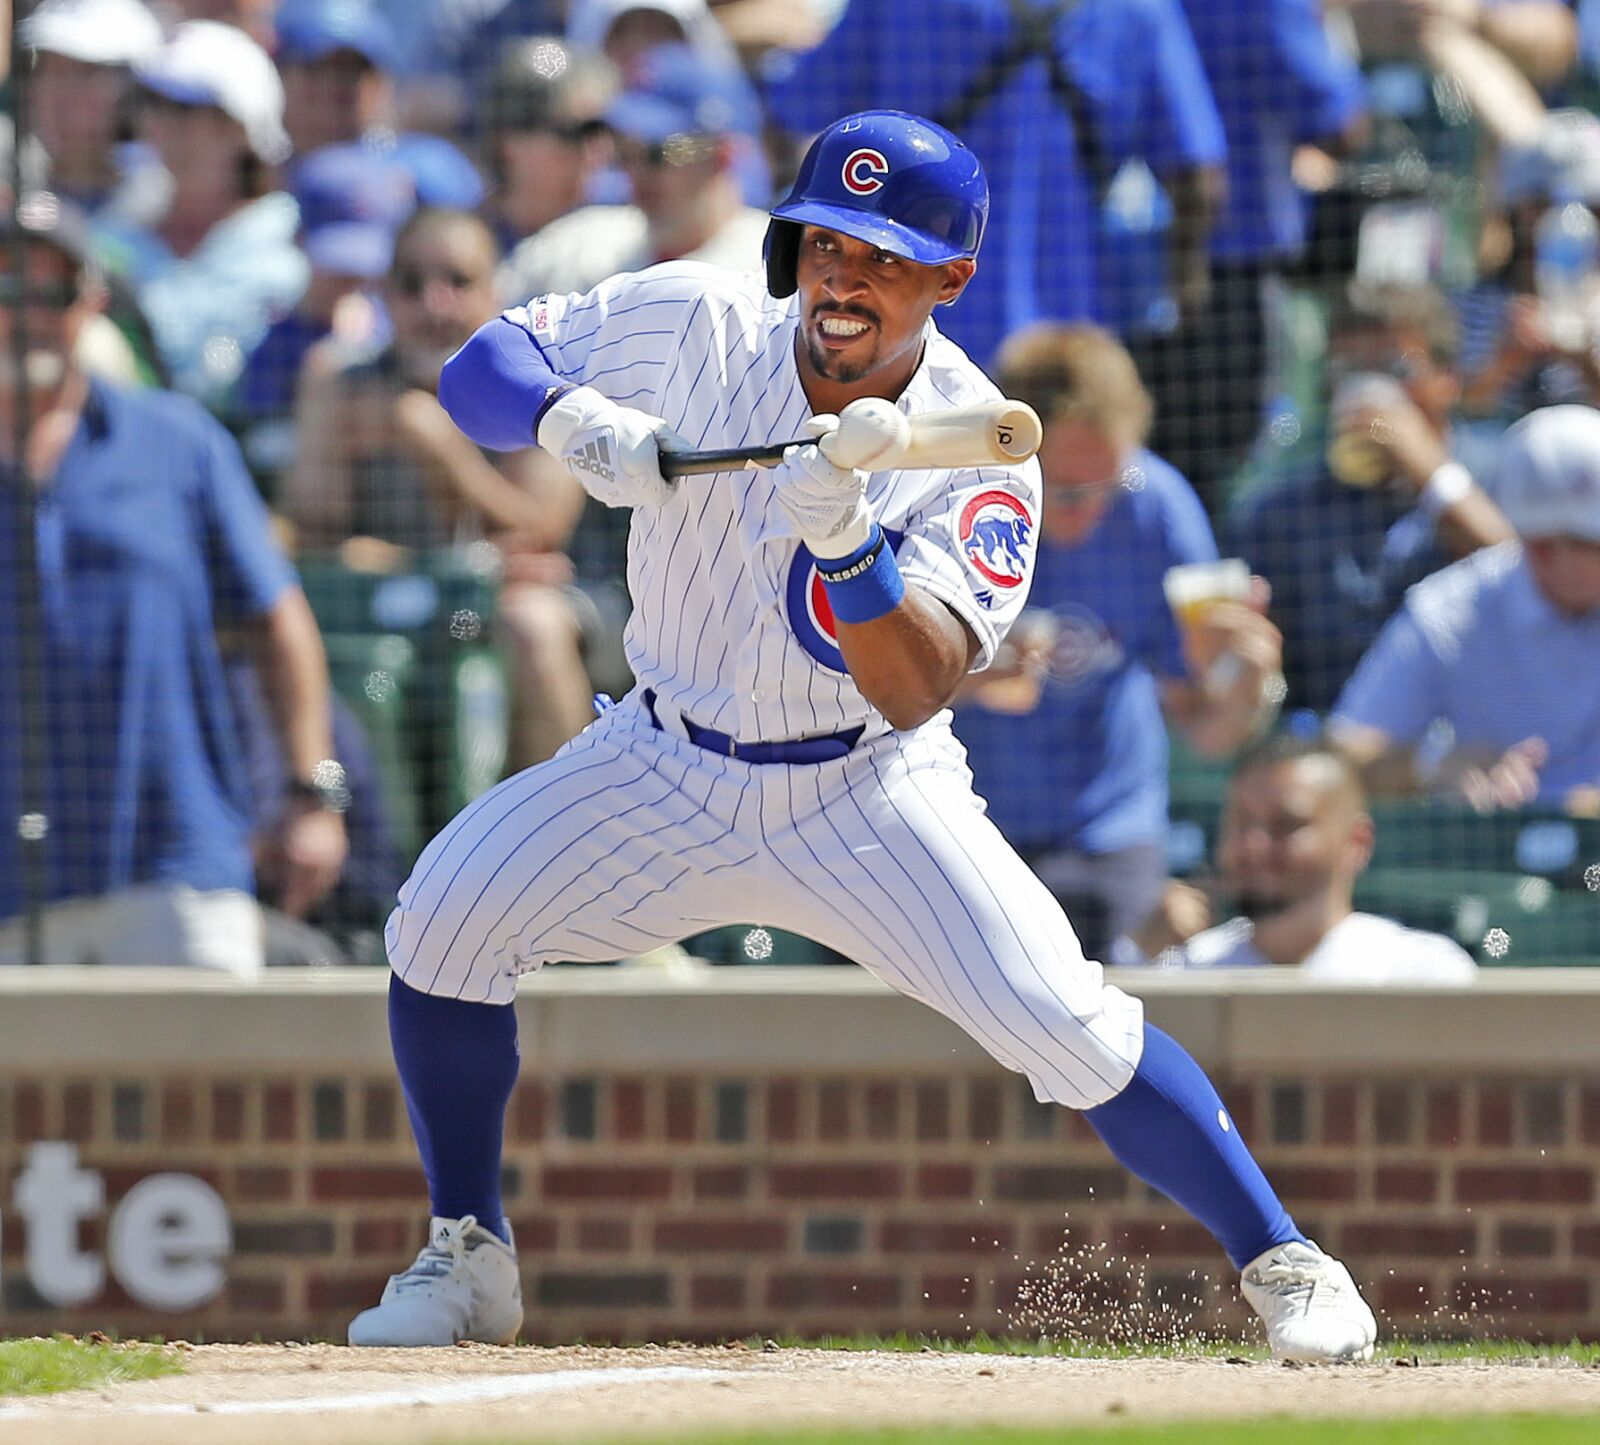 Chicago Cubs: Tony Kemp may become the new Swiss Army knife